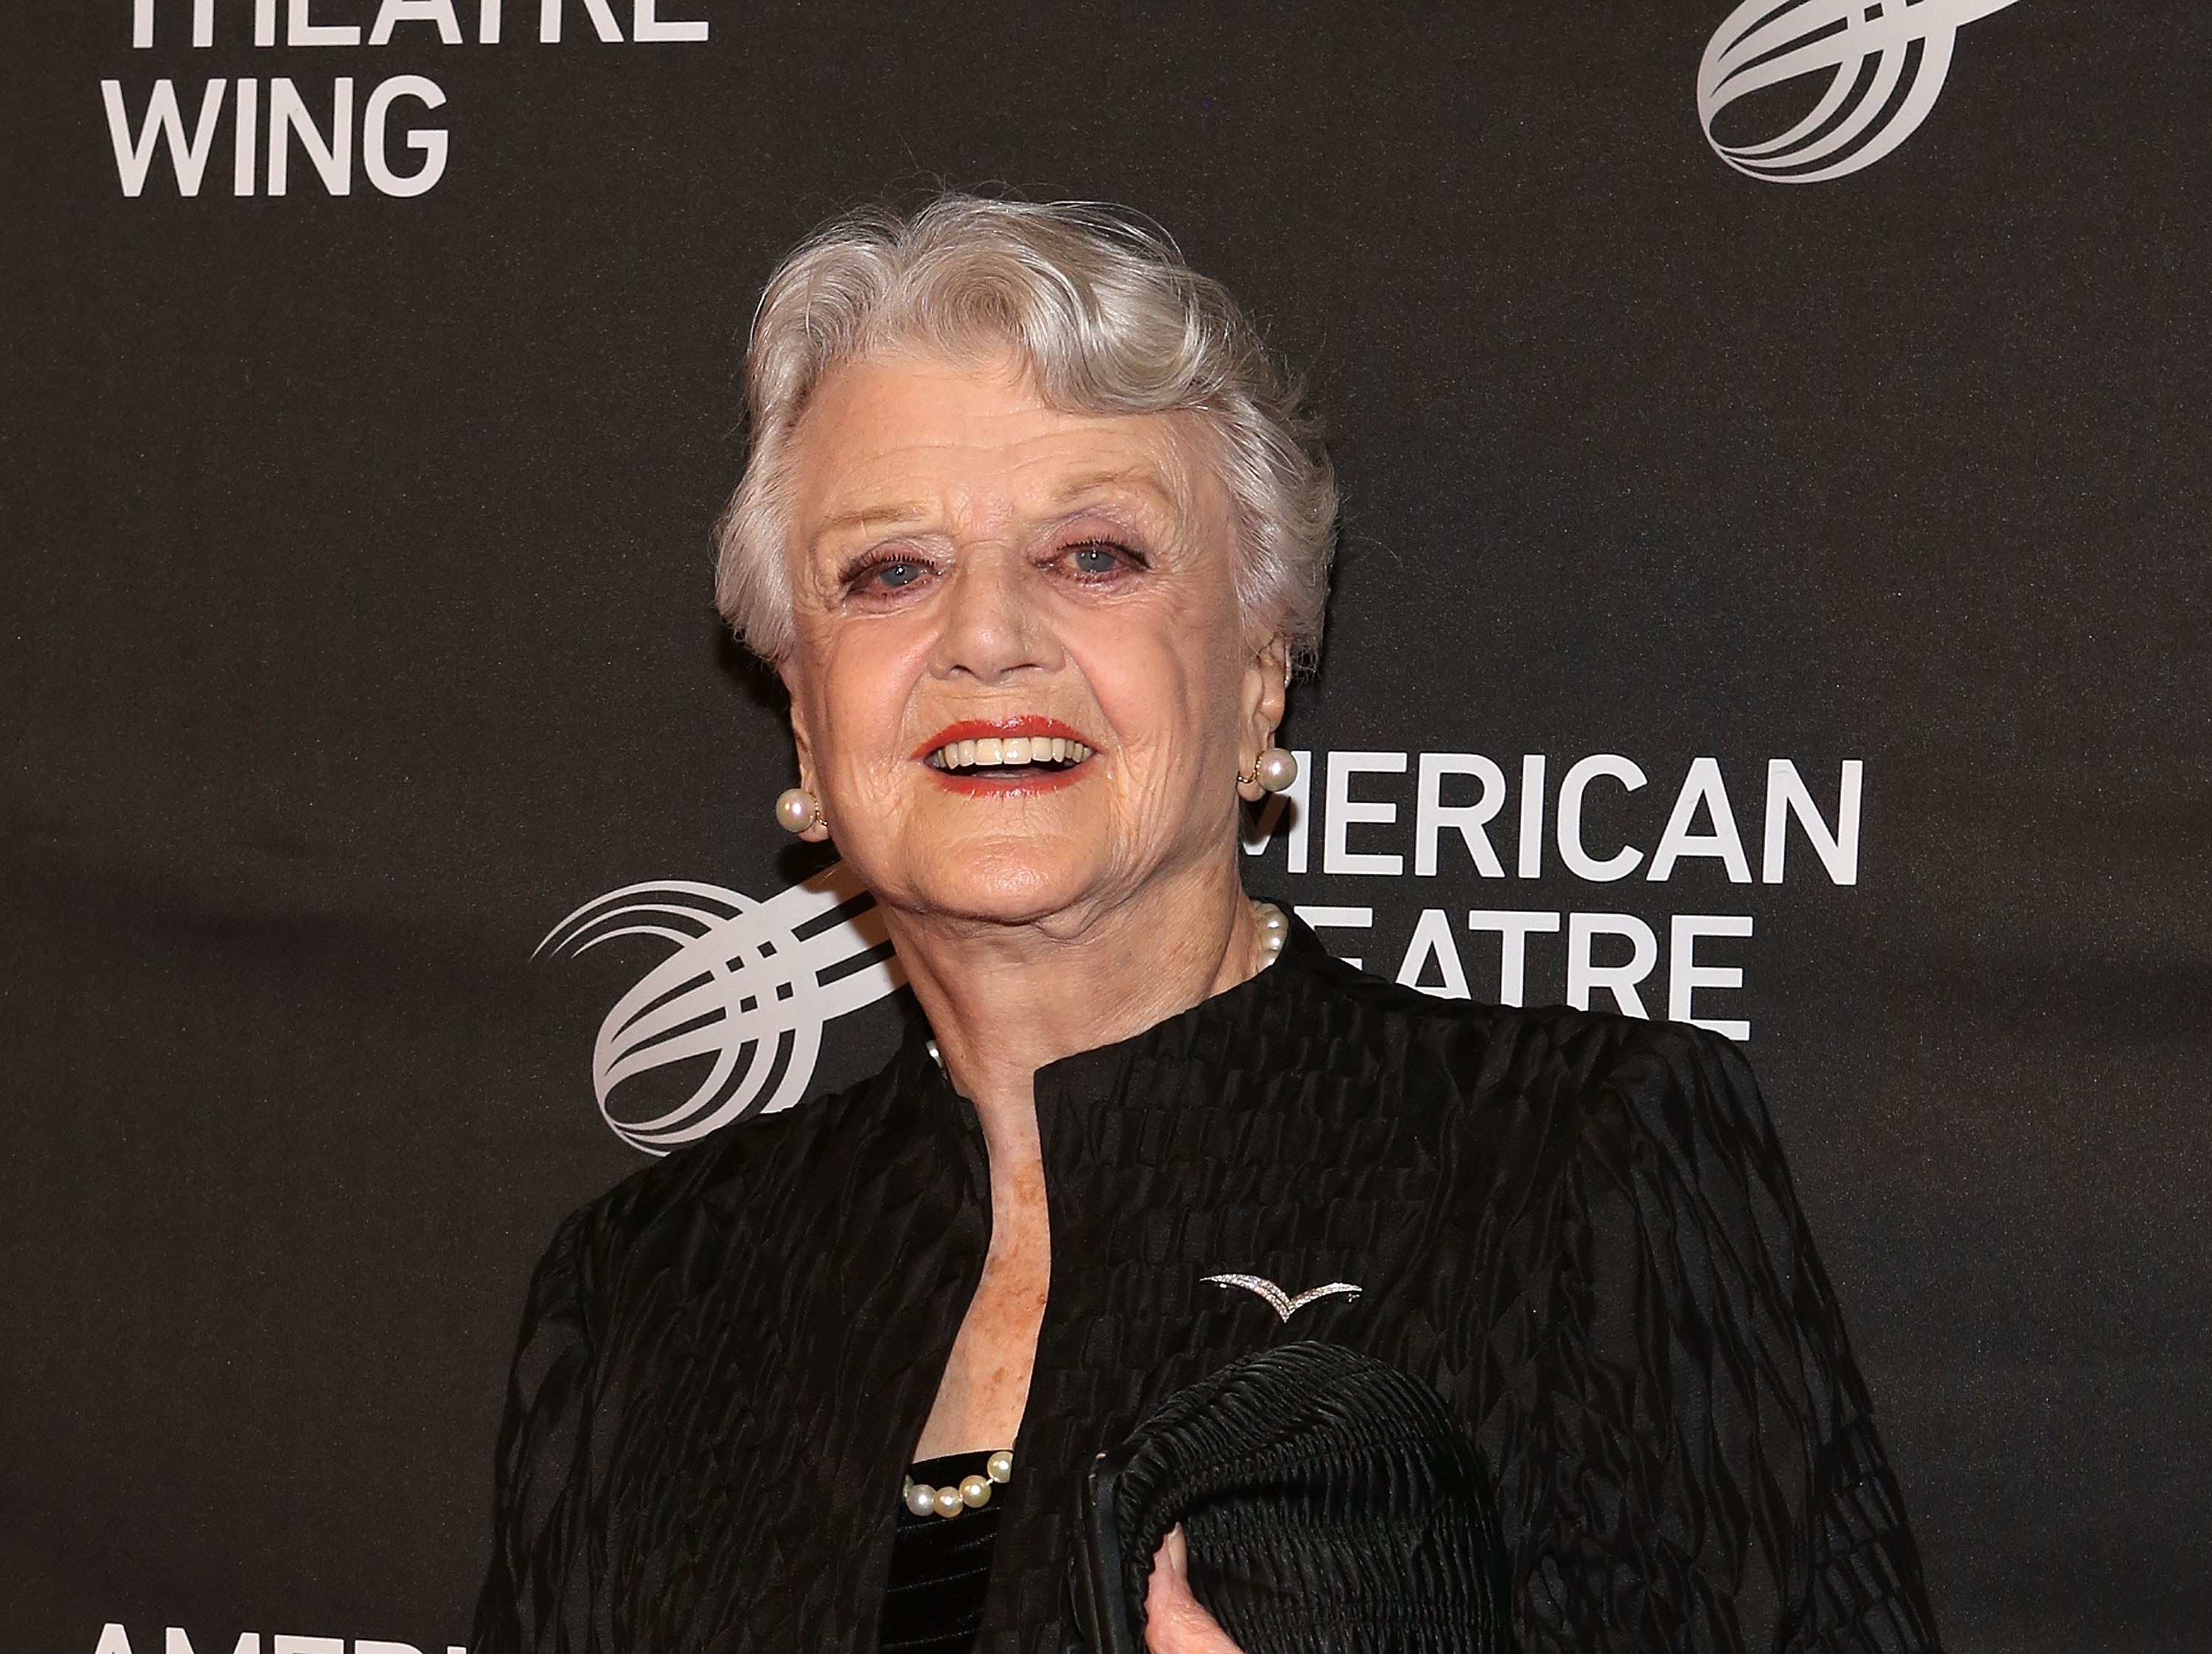 Angela Lansbury confirmed to play 'Balloon lady' in Mary Poppins Returns